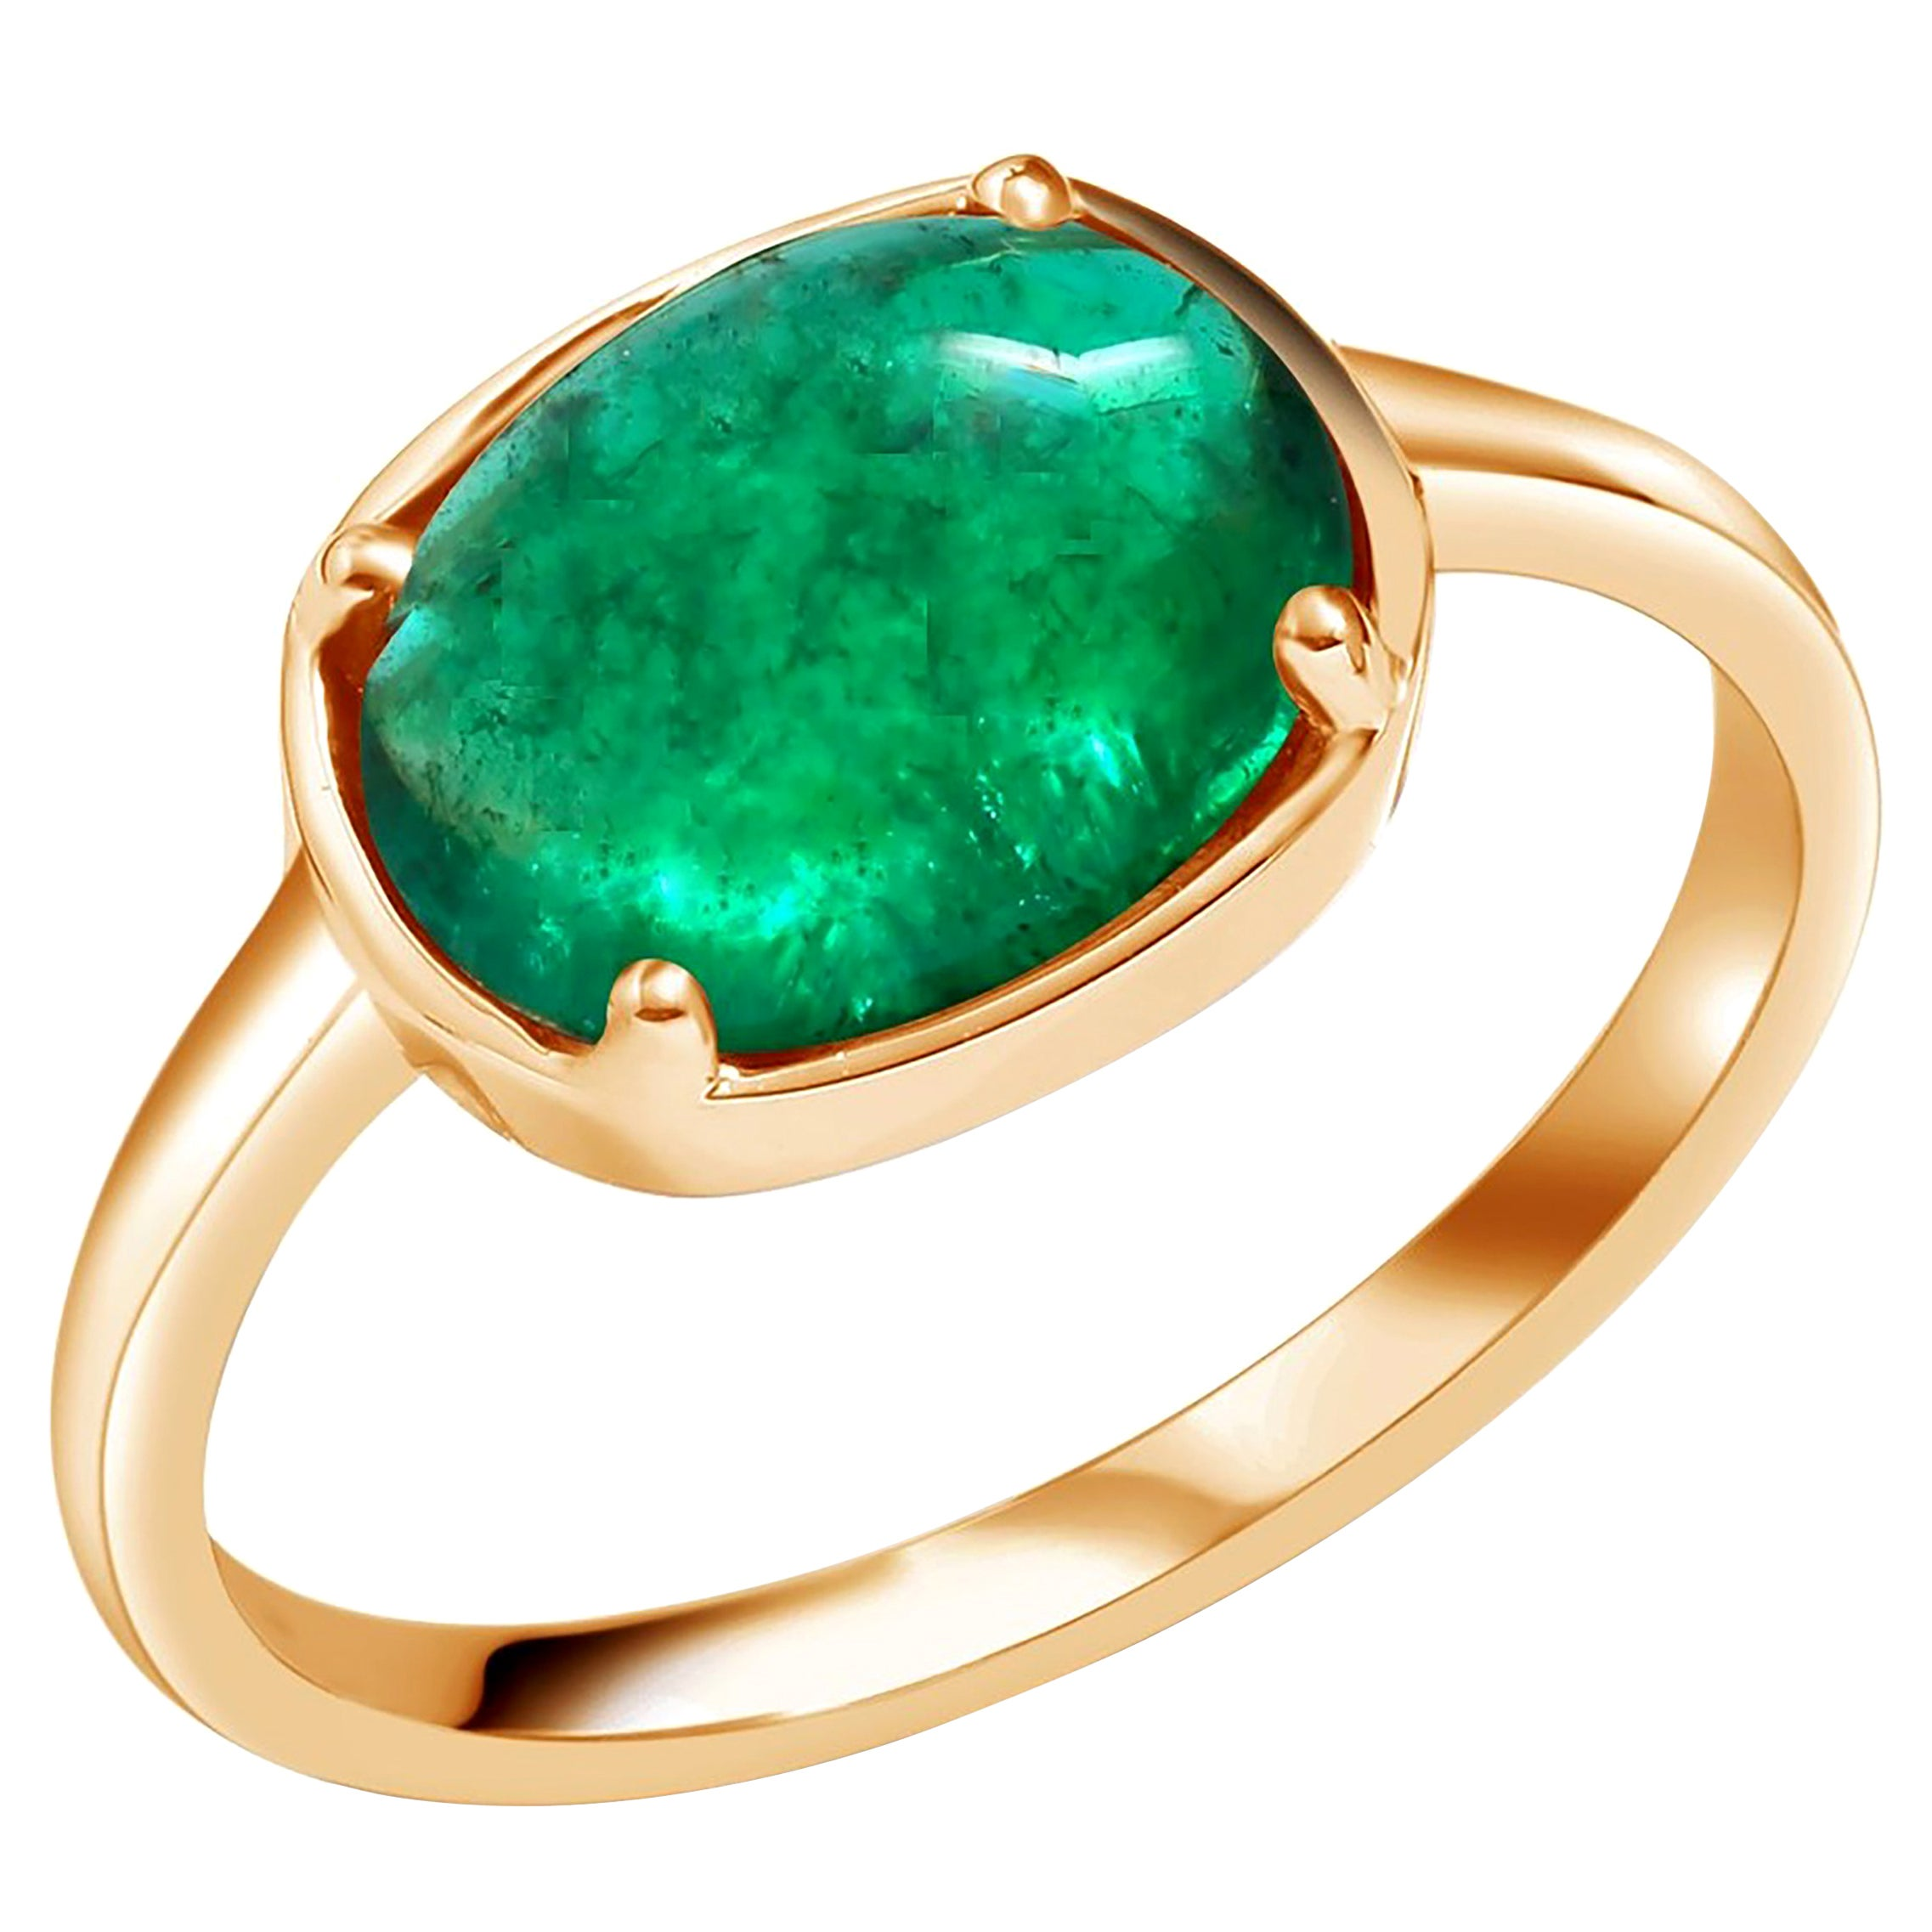 Cabochon Emerald Solitaire Rose Gold Ring Weighing 2.40 Carats